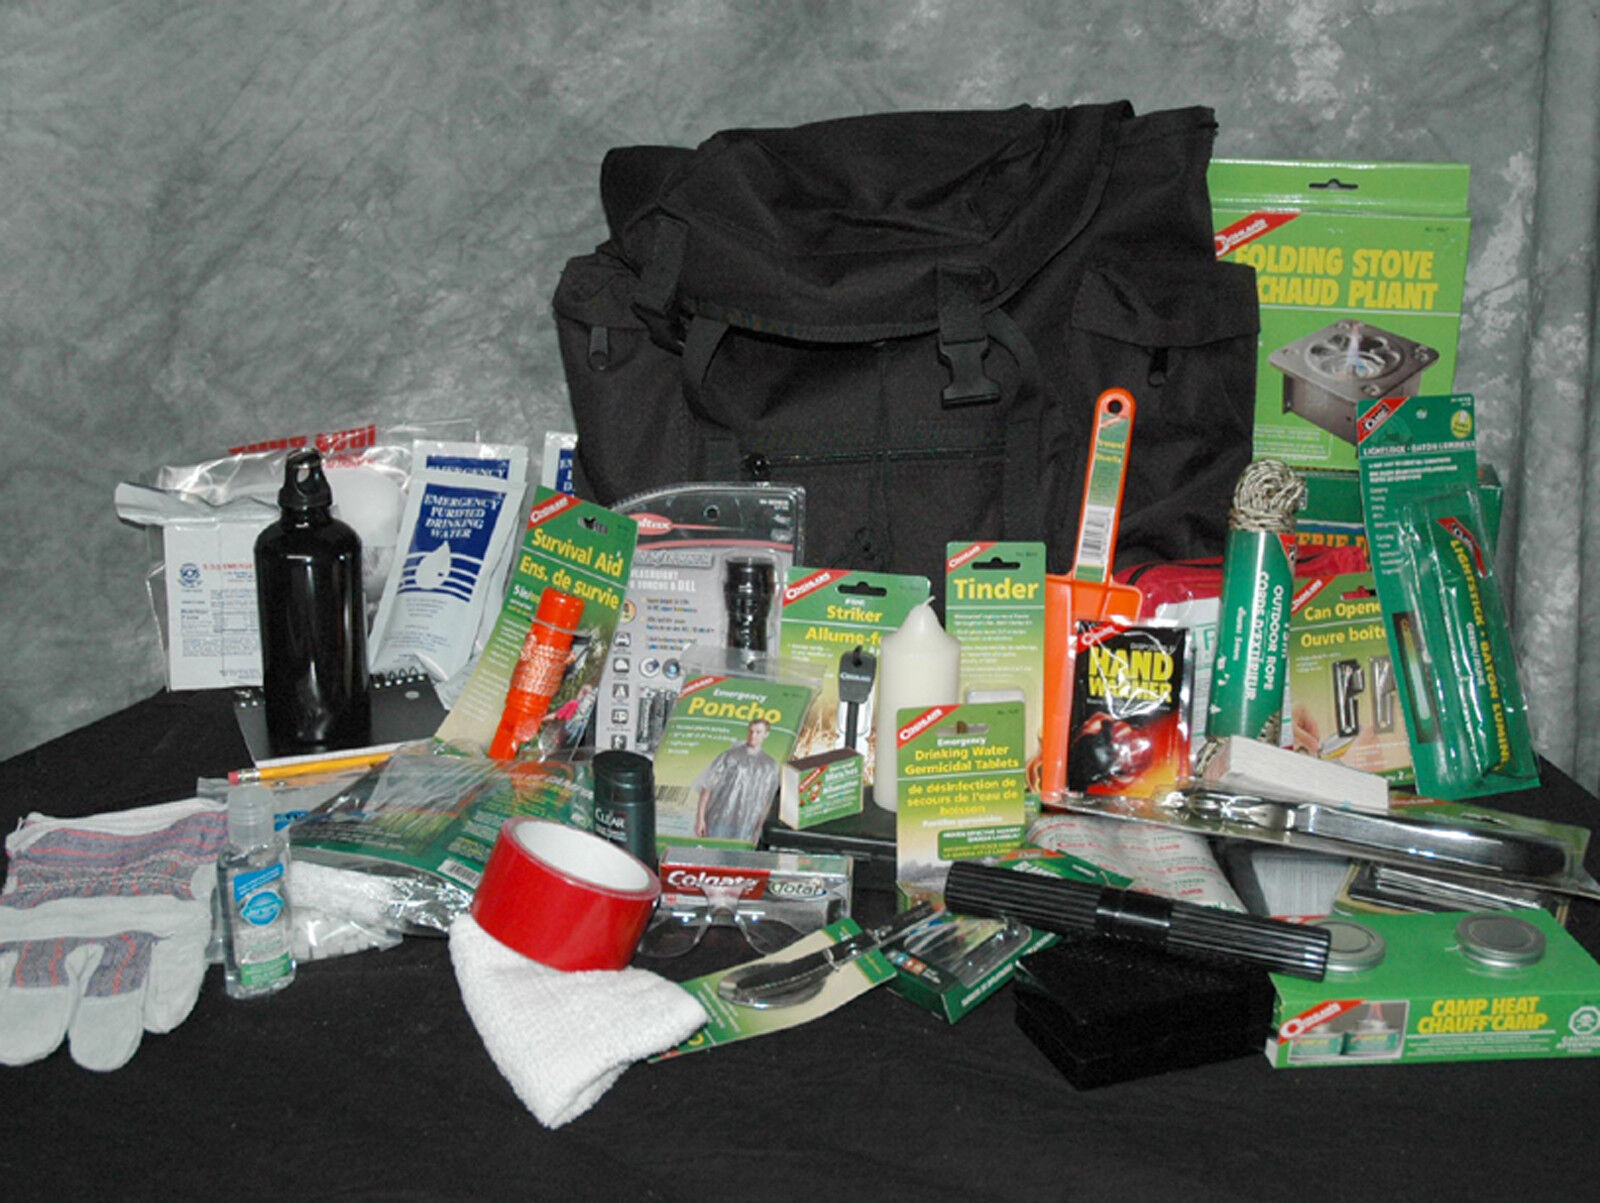 Survival kit 1 person luxe,72 hours emergency, water, food ration +53 items